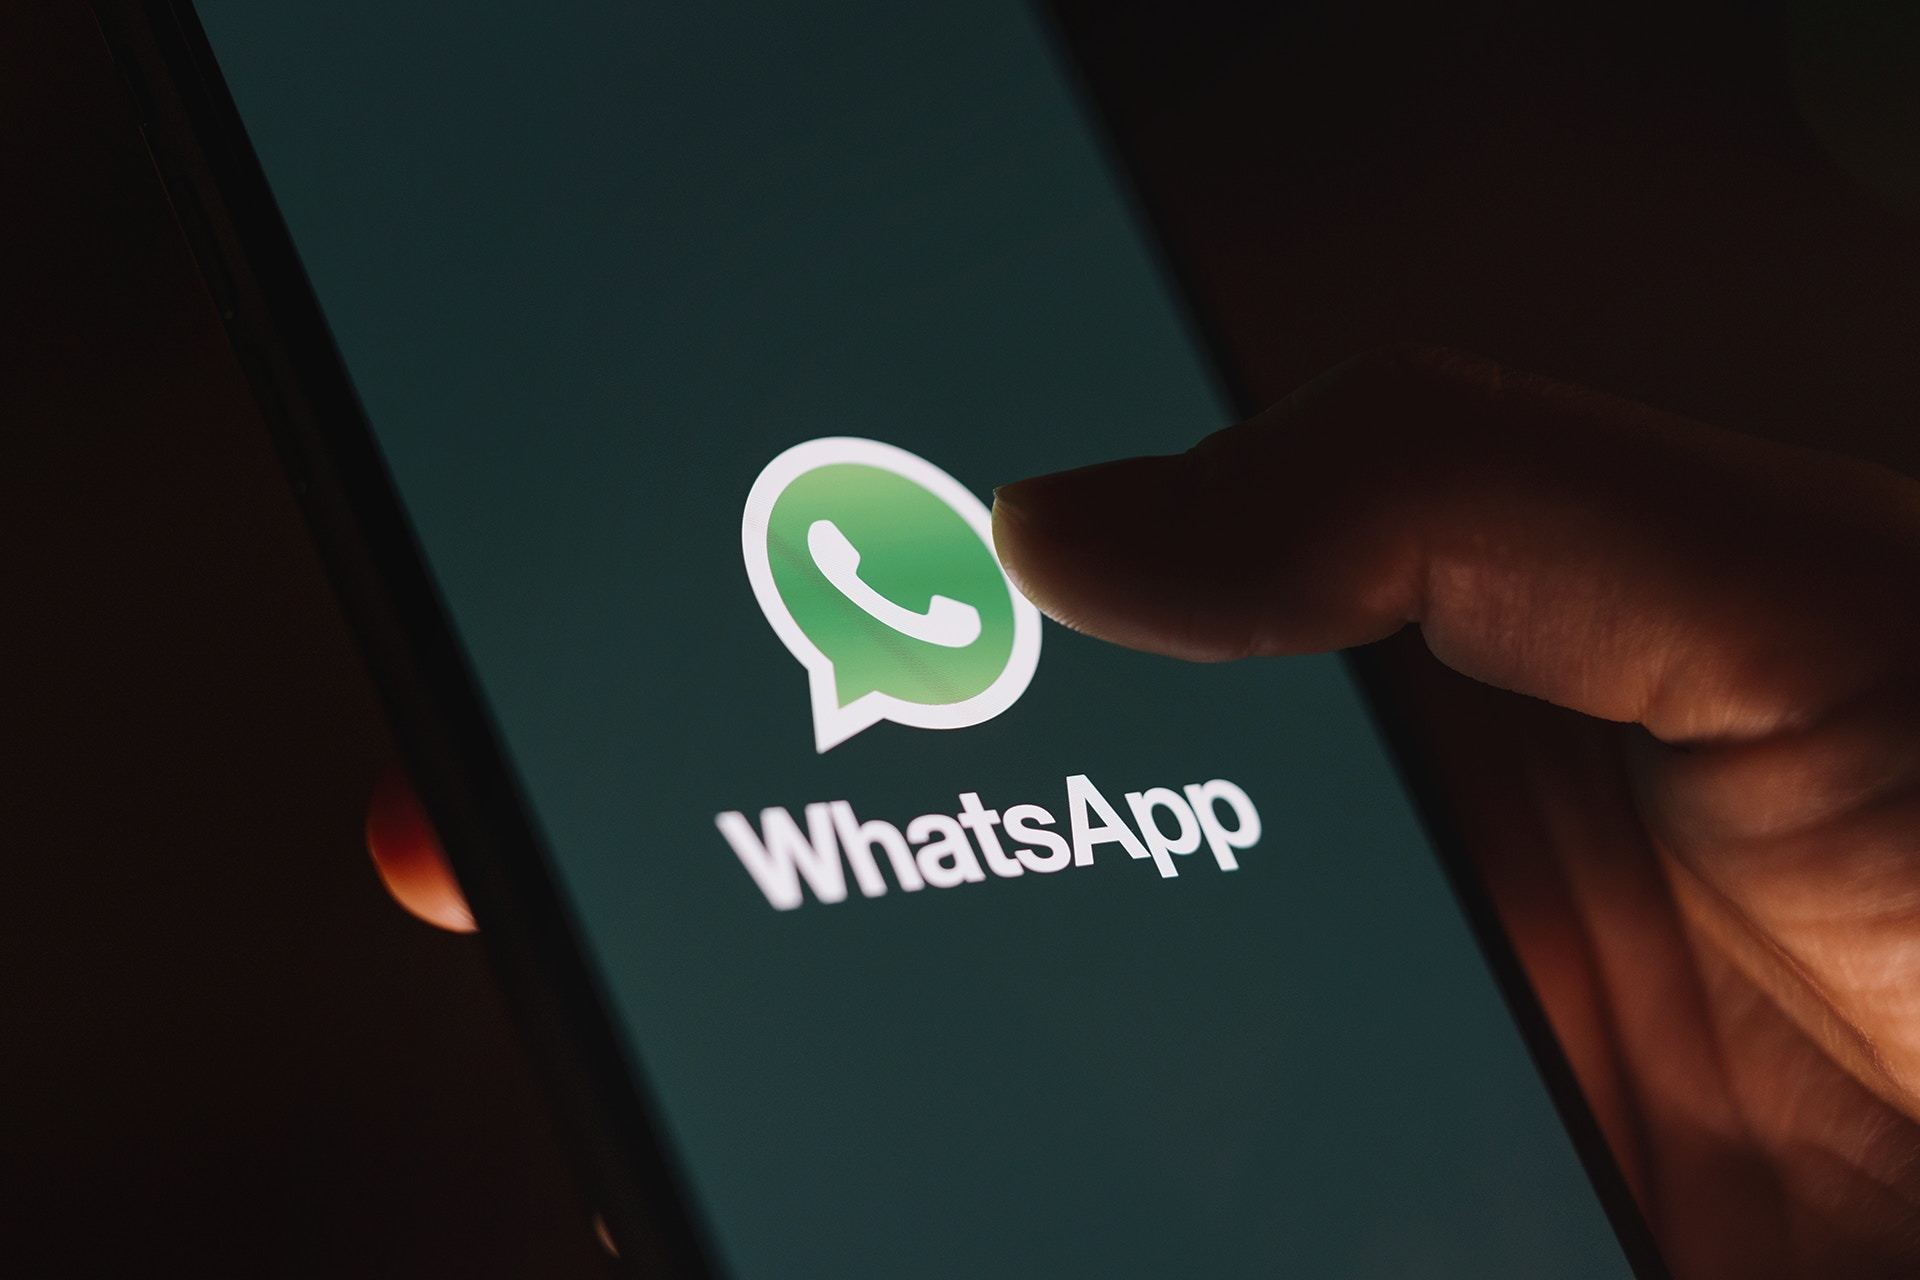 A person holding a cell phone with the WhatsApp logo displayed on screen. This image is being used as the thumbnail for a blog on WhatsApp business marketing